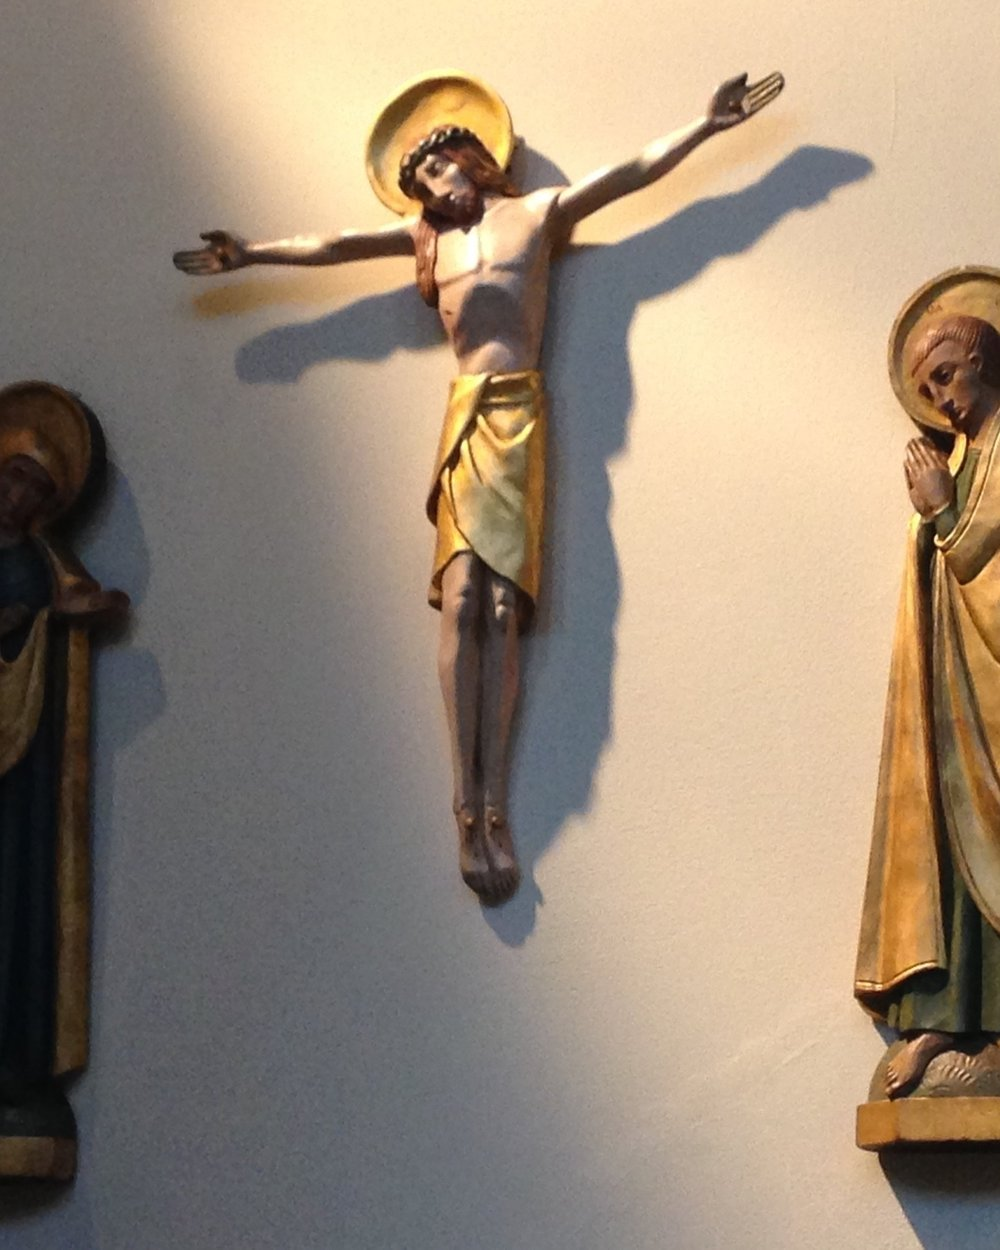 Calvary - This Calvary scene was presented to the church by local artist Mr. Purnell.